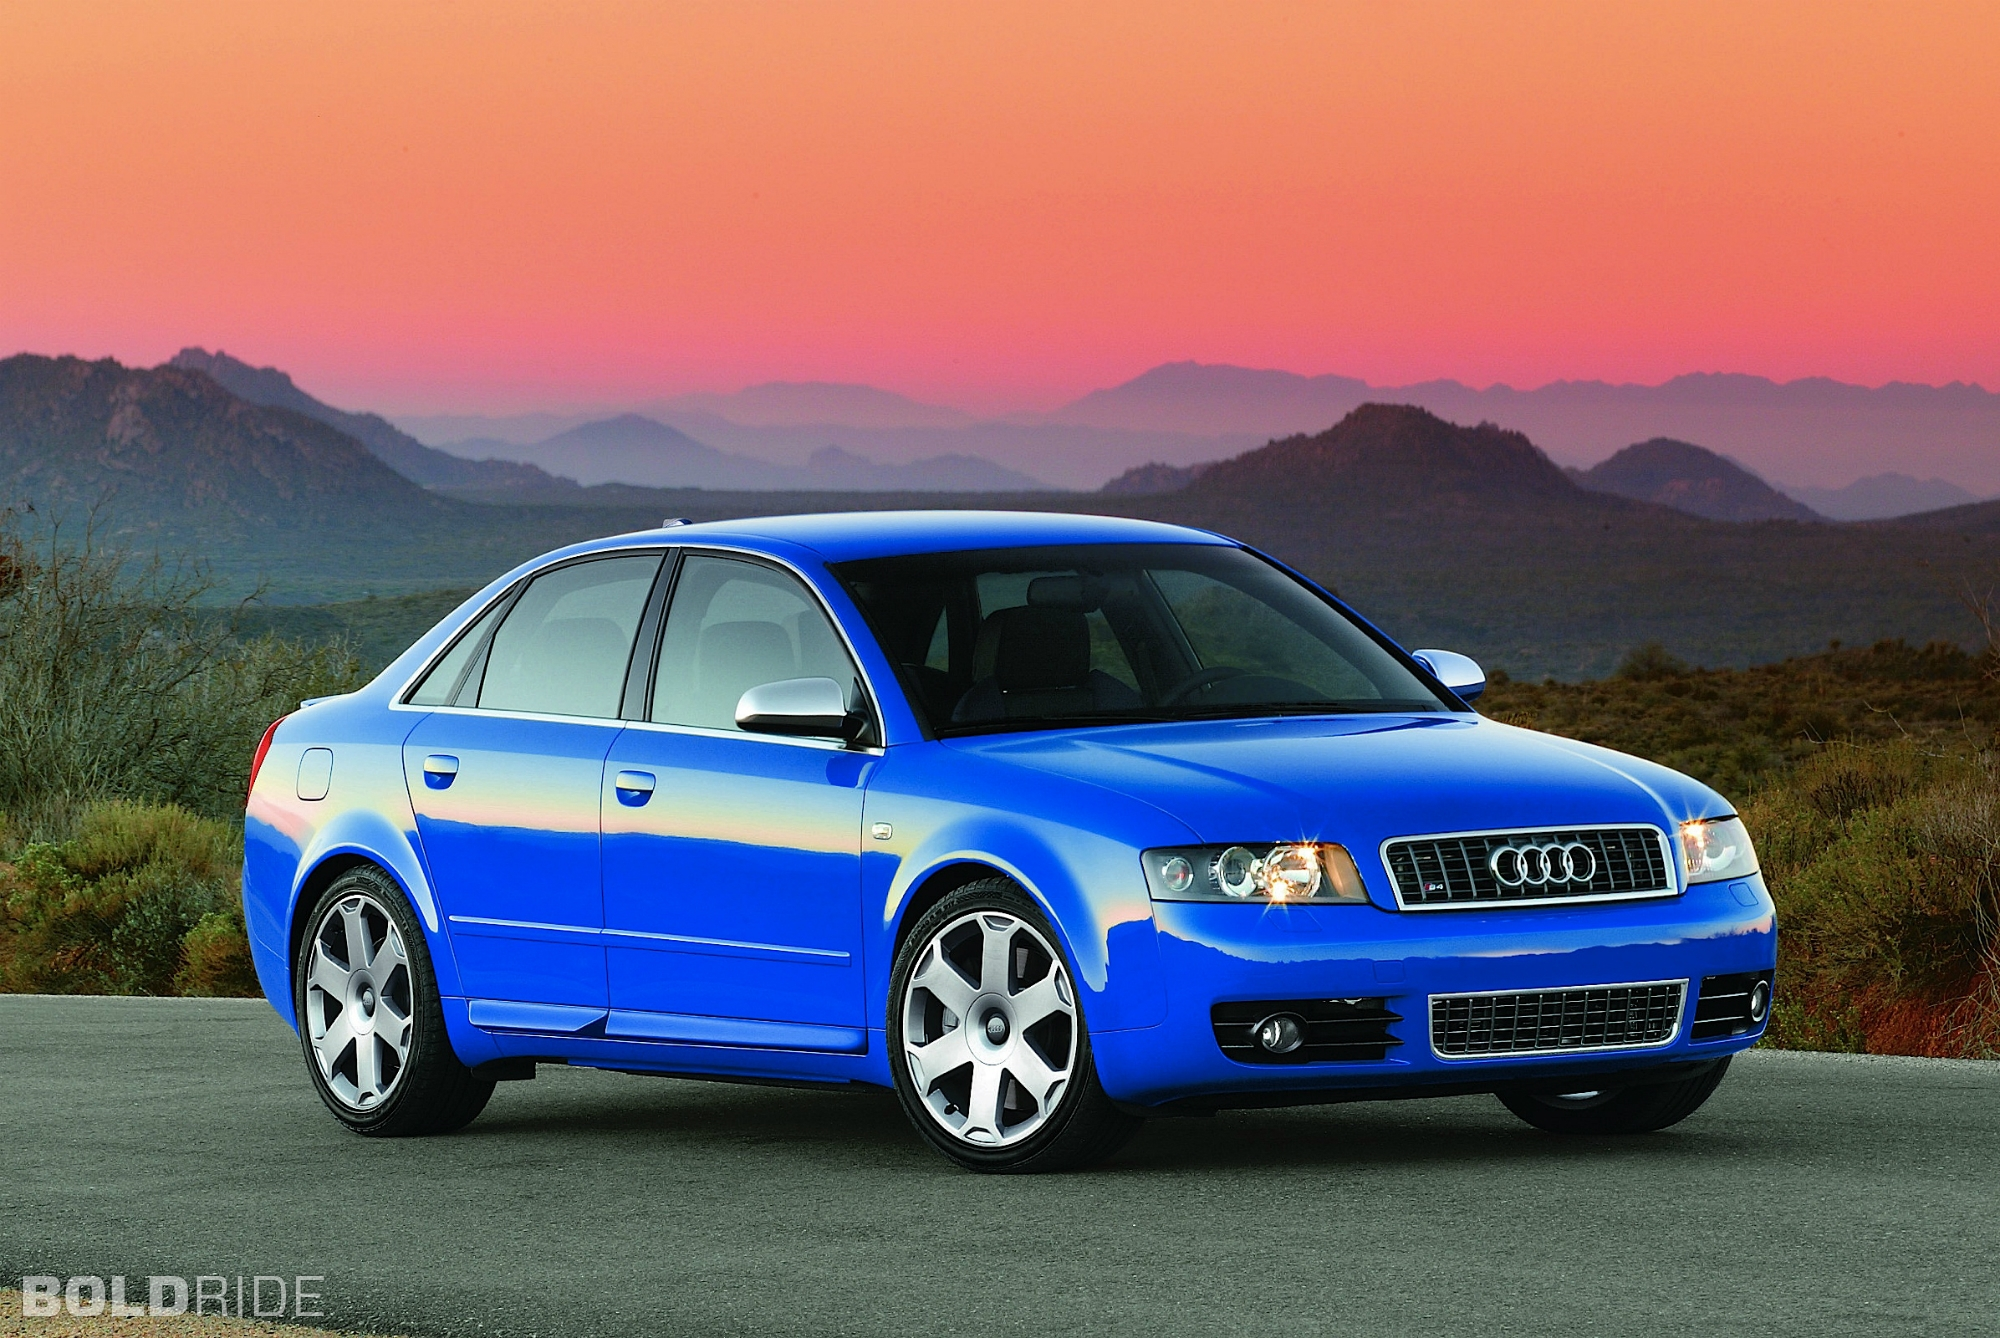 2002 Audi S4 Blue 200 Interior And Exterior Images